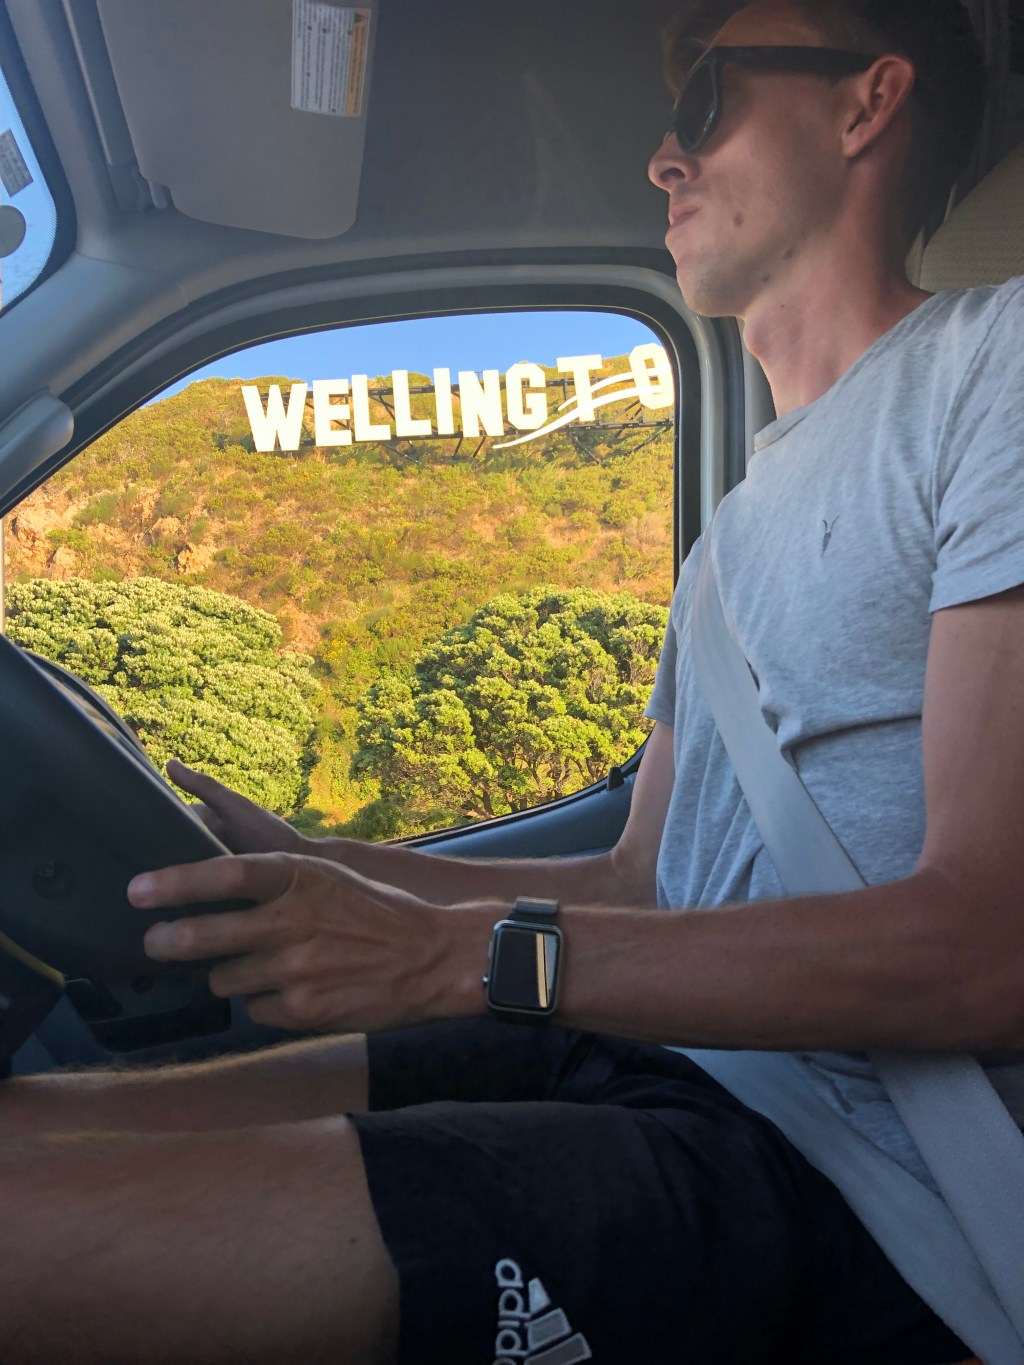 Wellington Wellywood sign